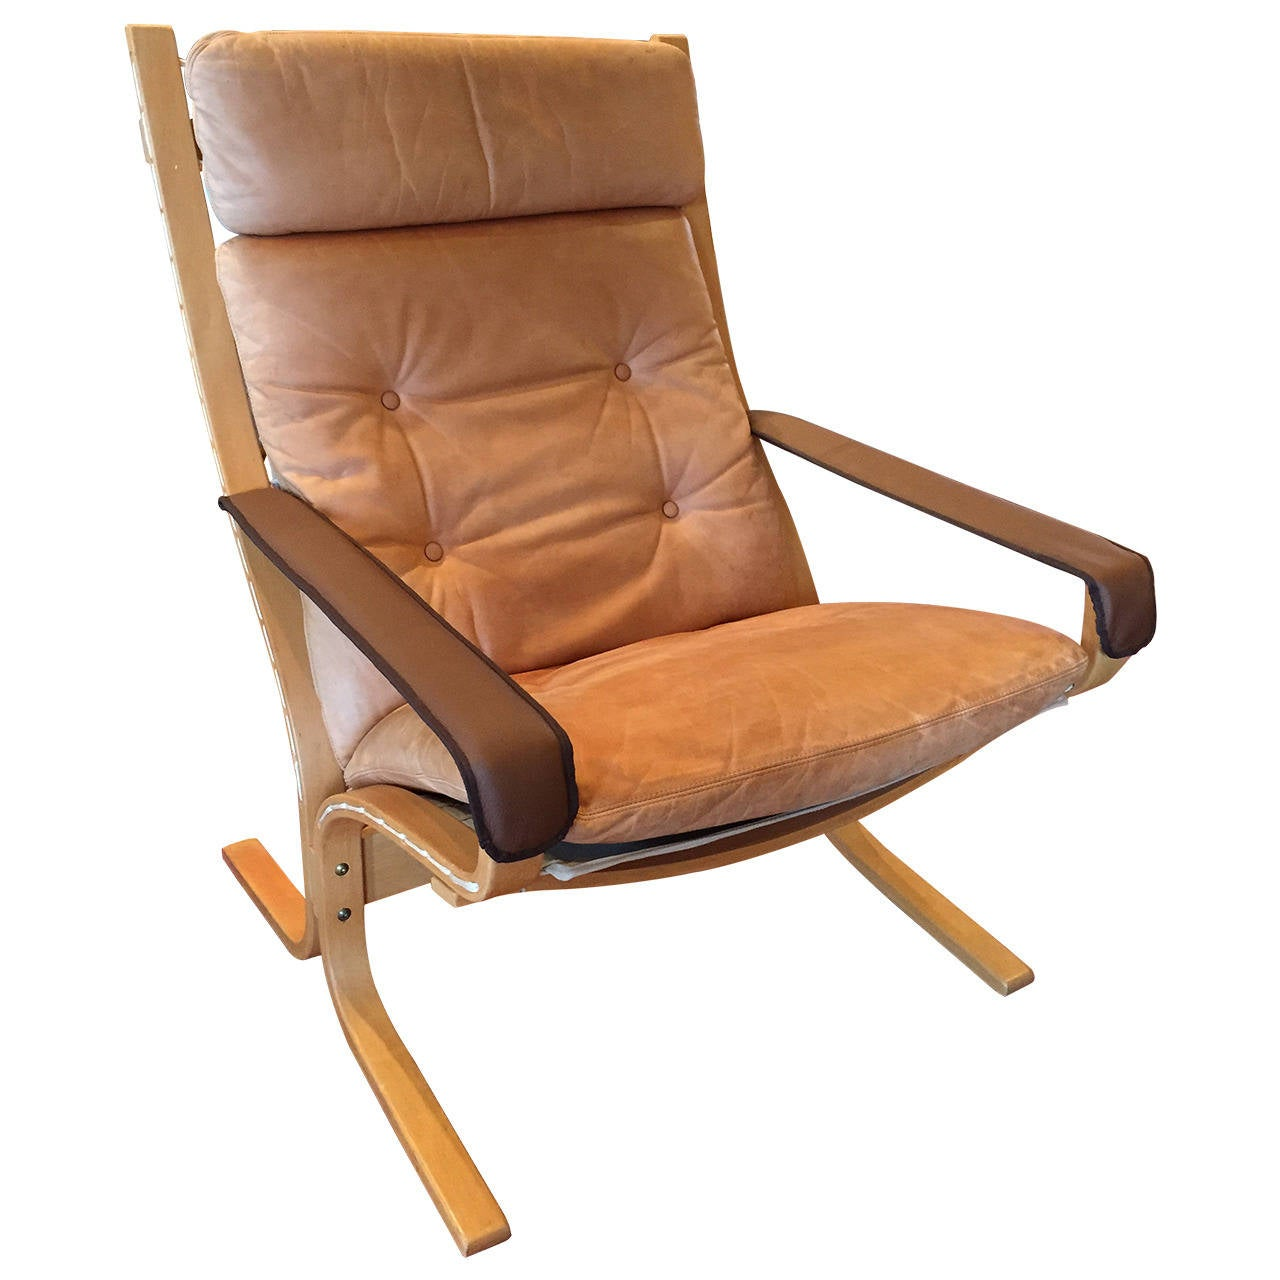 Ingmar Relling High Back Leather Siesta Chair At 1stdibs